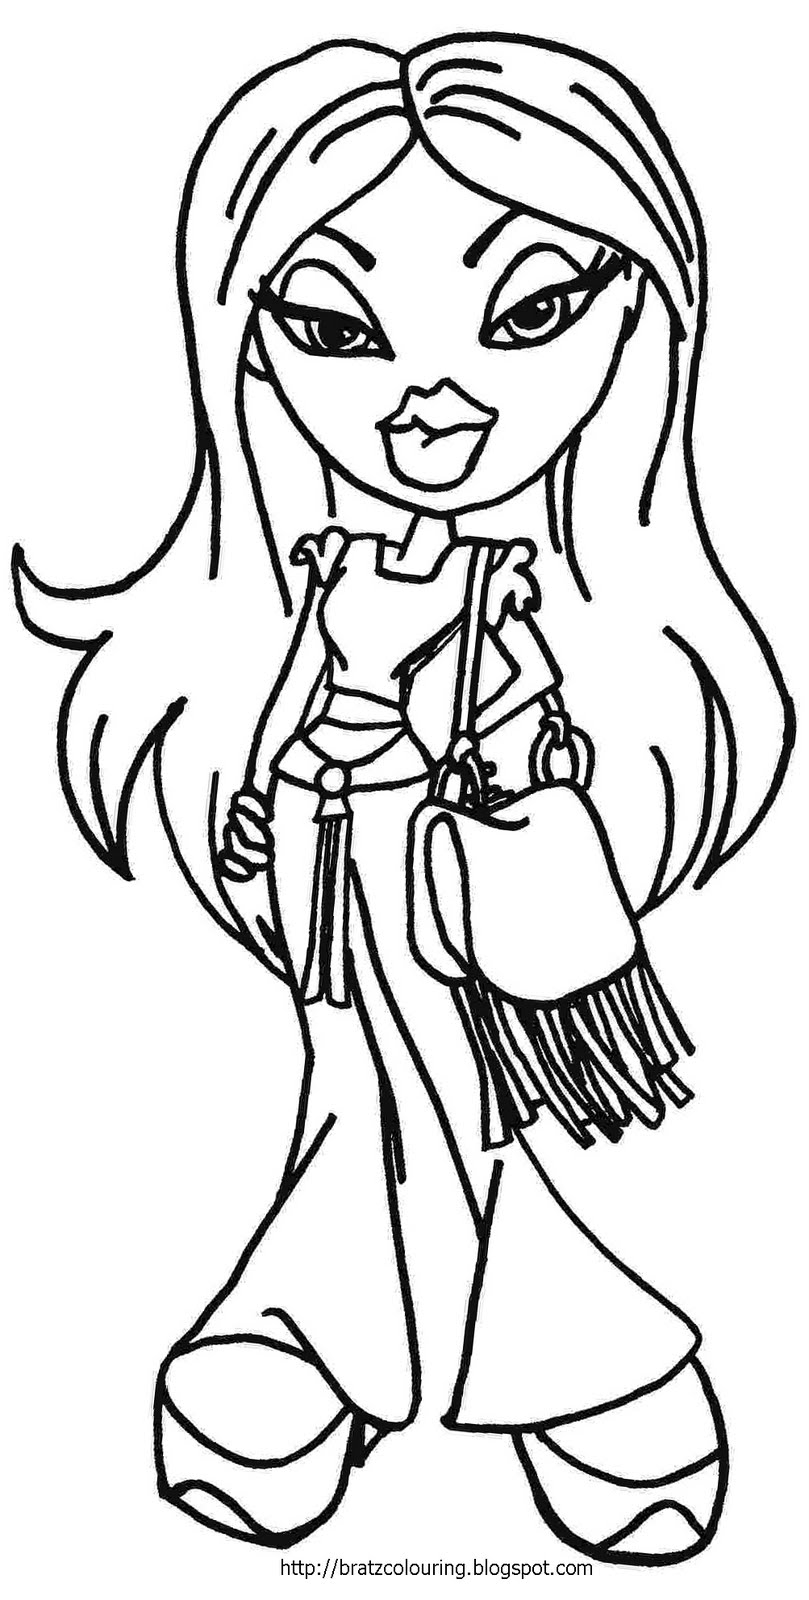 real people coloring pages - photo#1